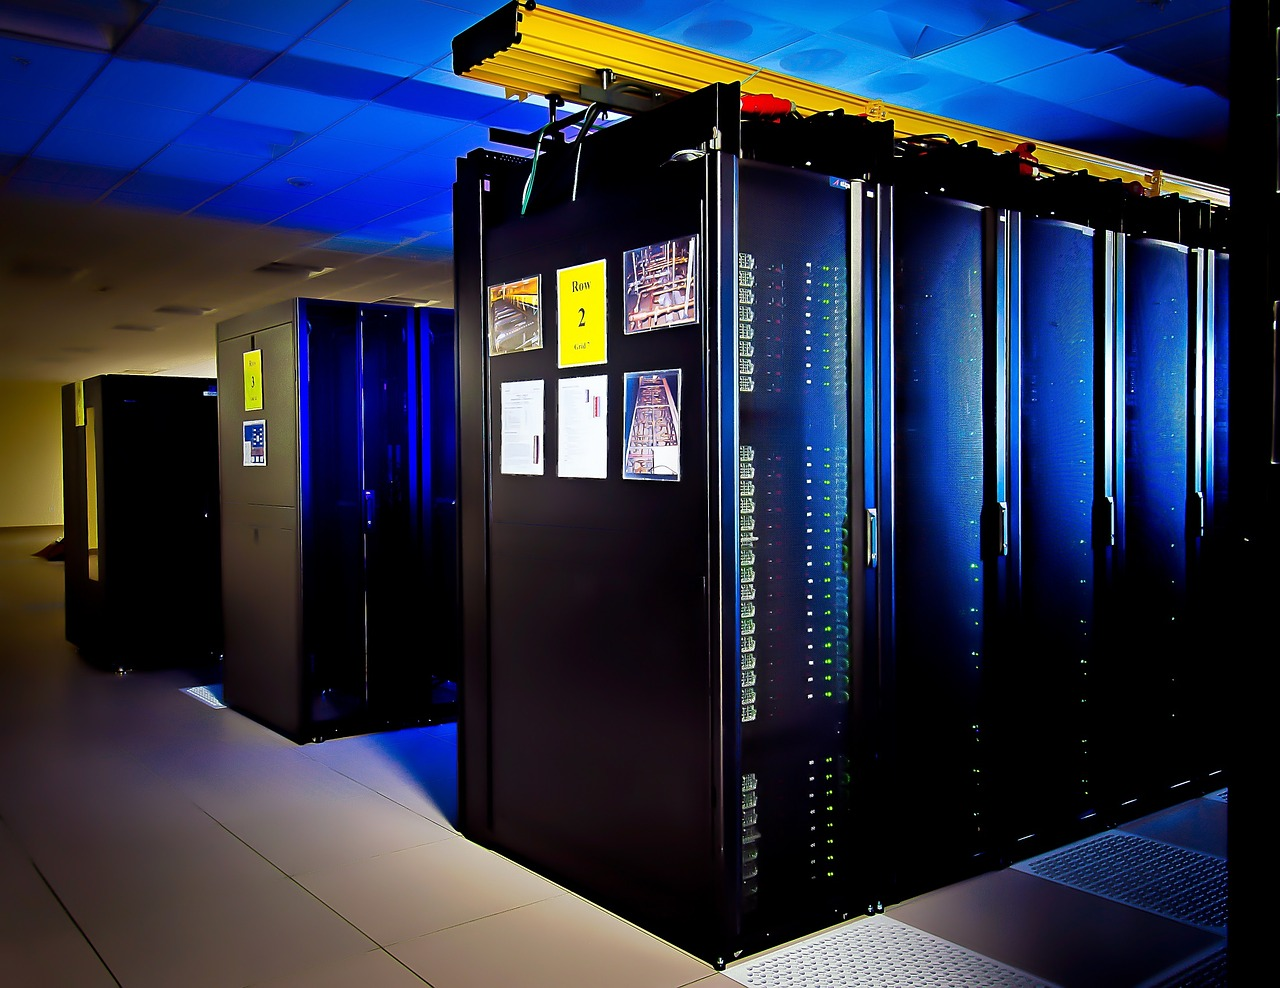 Supercomputadora Cray XC-50